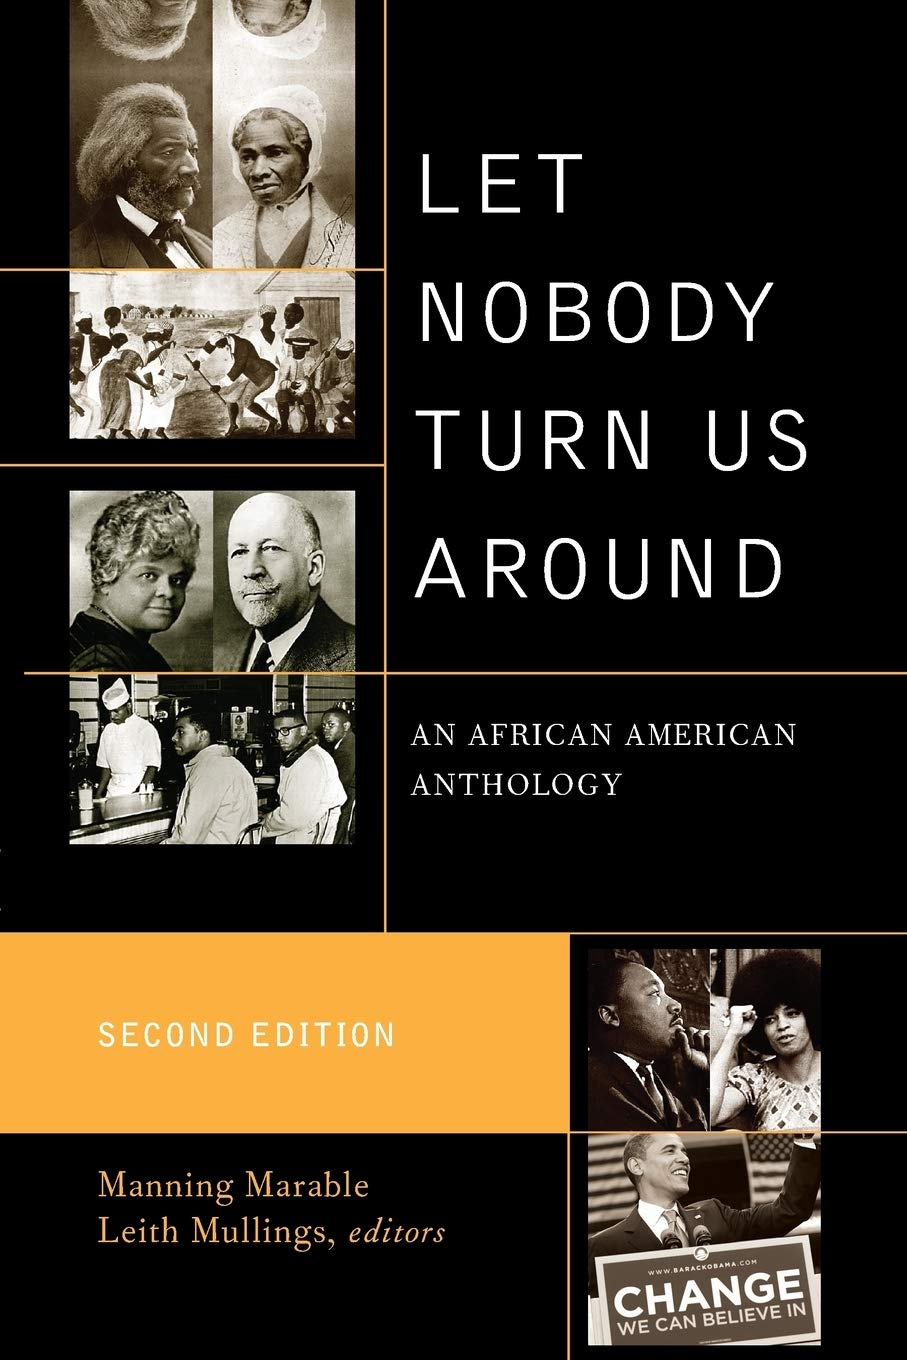 Image OfLet Nobody Turn Us Around: An African American Anthology, Second Edition